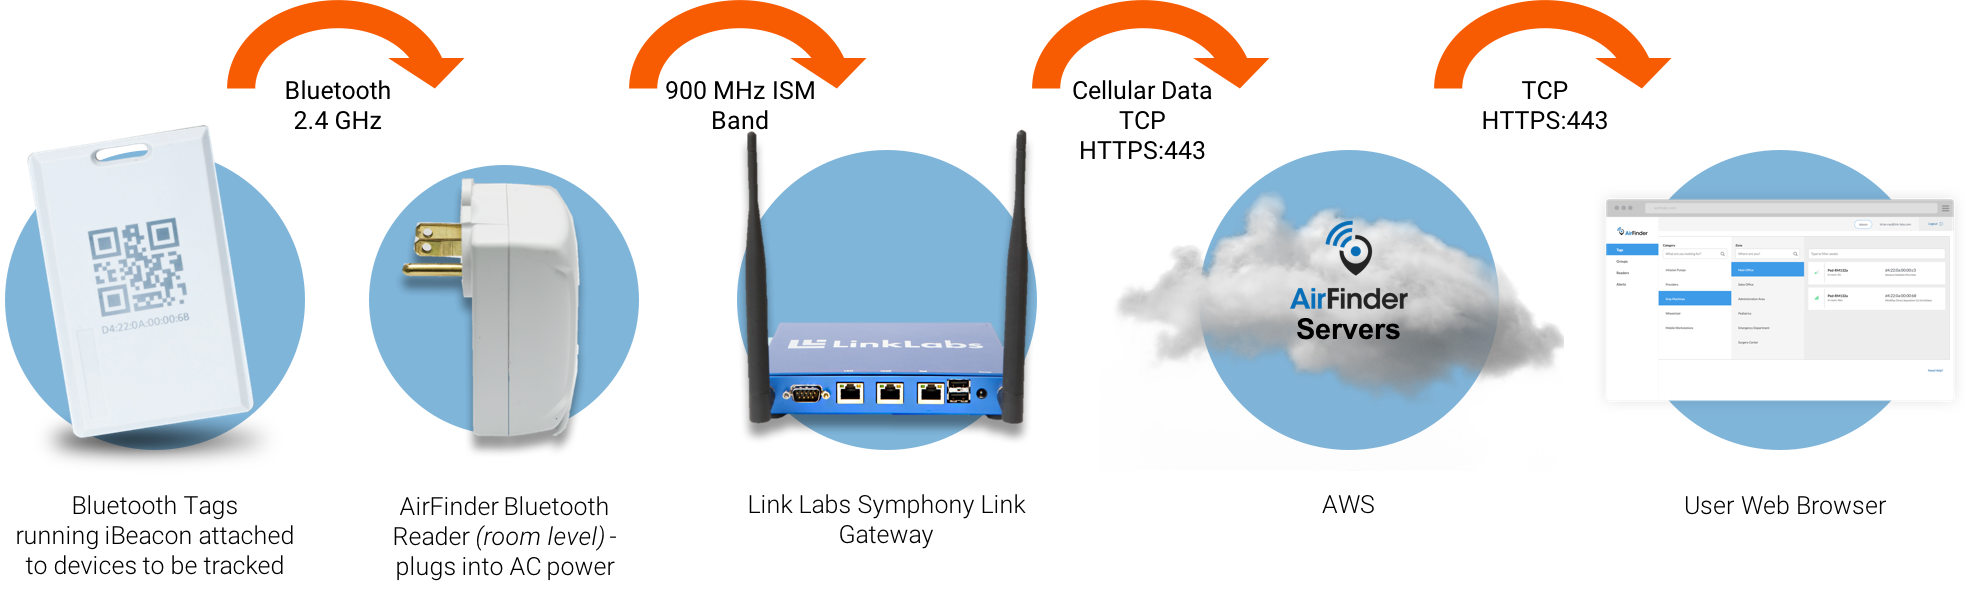 AirFinder Architecture Overview